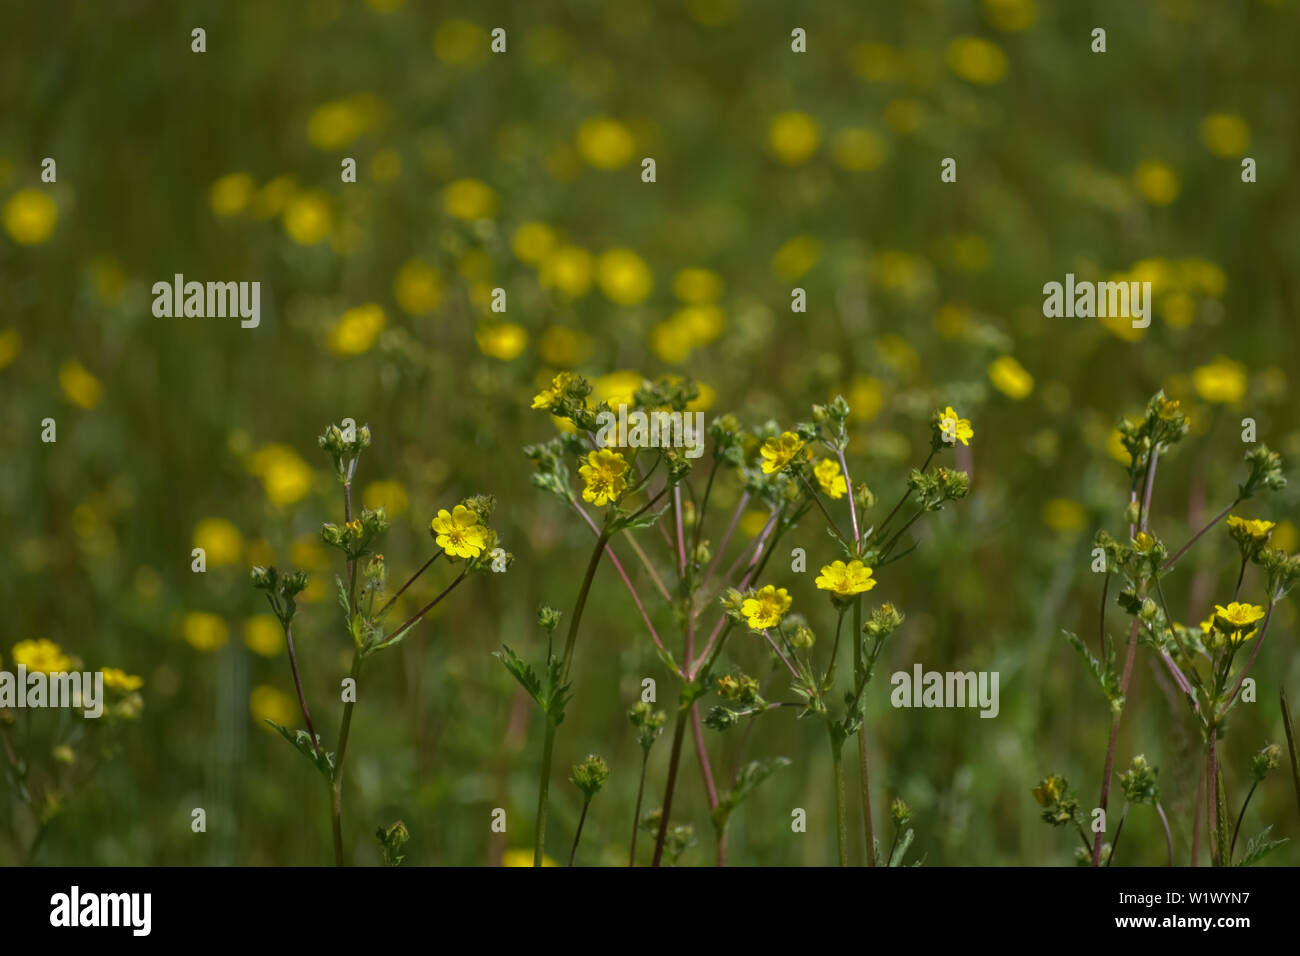 Bright yellow wildflowers in a grassy meadow. - Stock Image